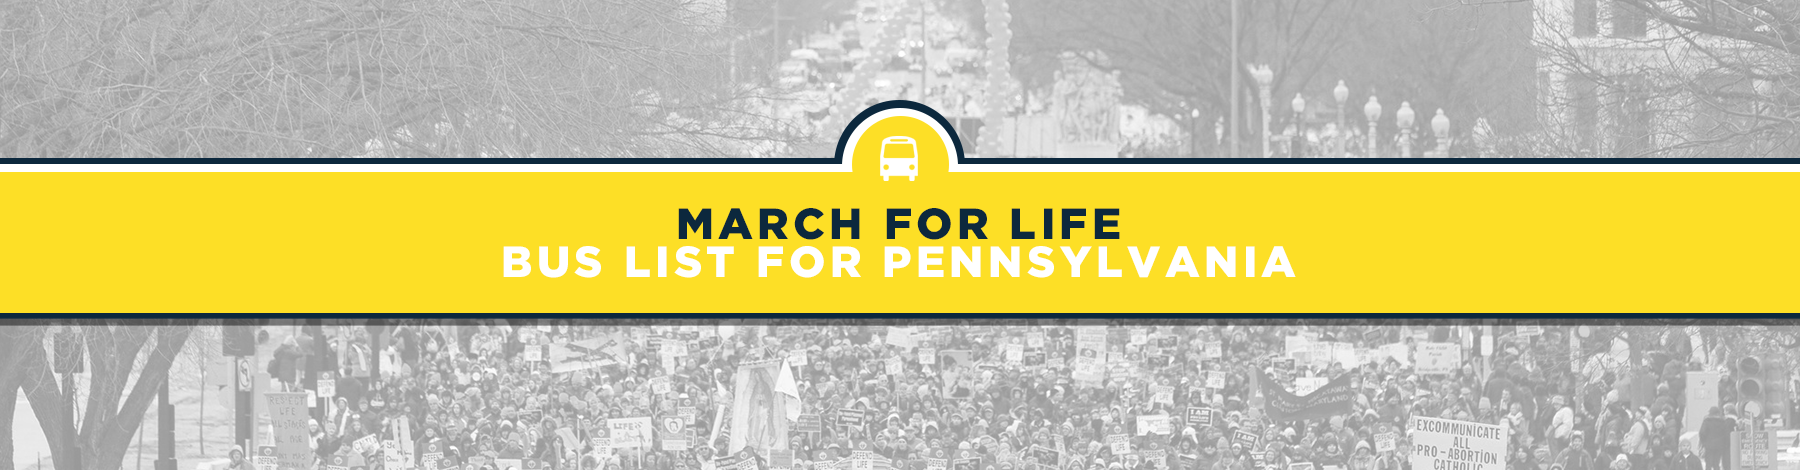 March-for-Life-Blog-Graphic-1-12-15